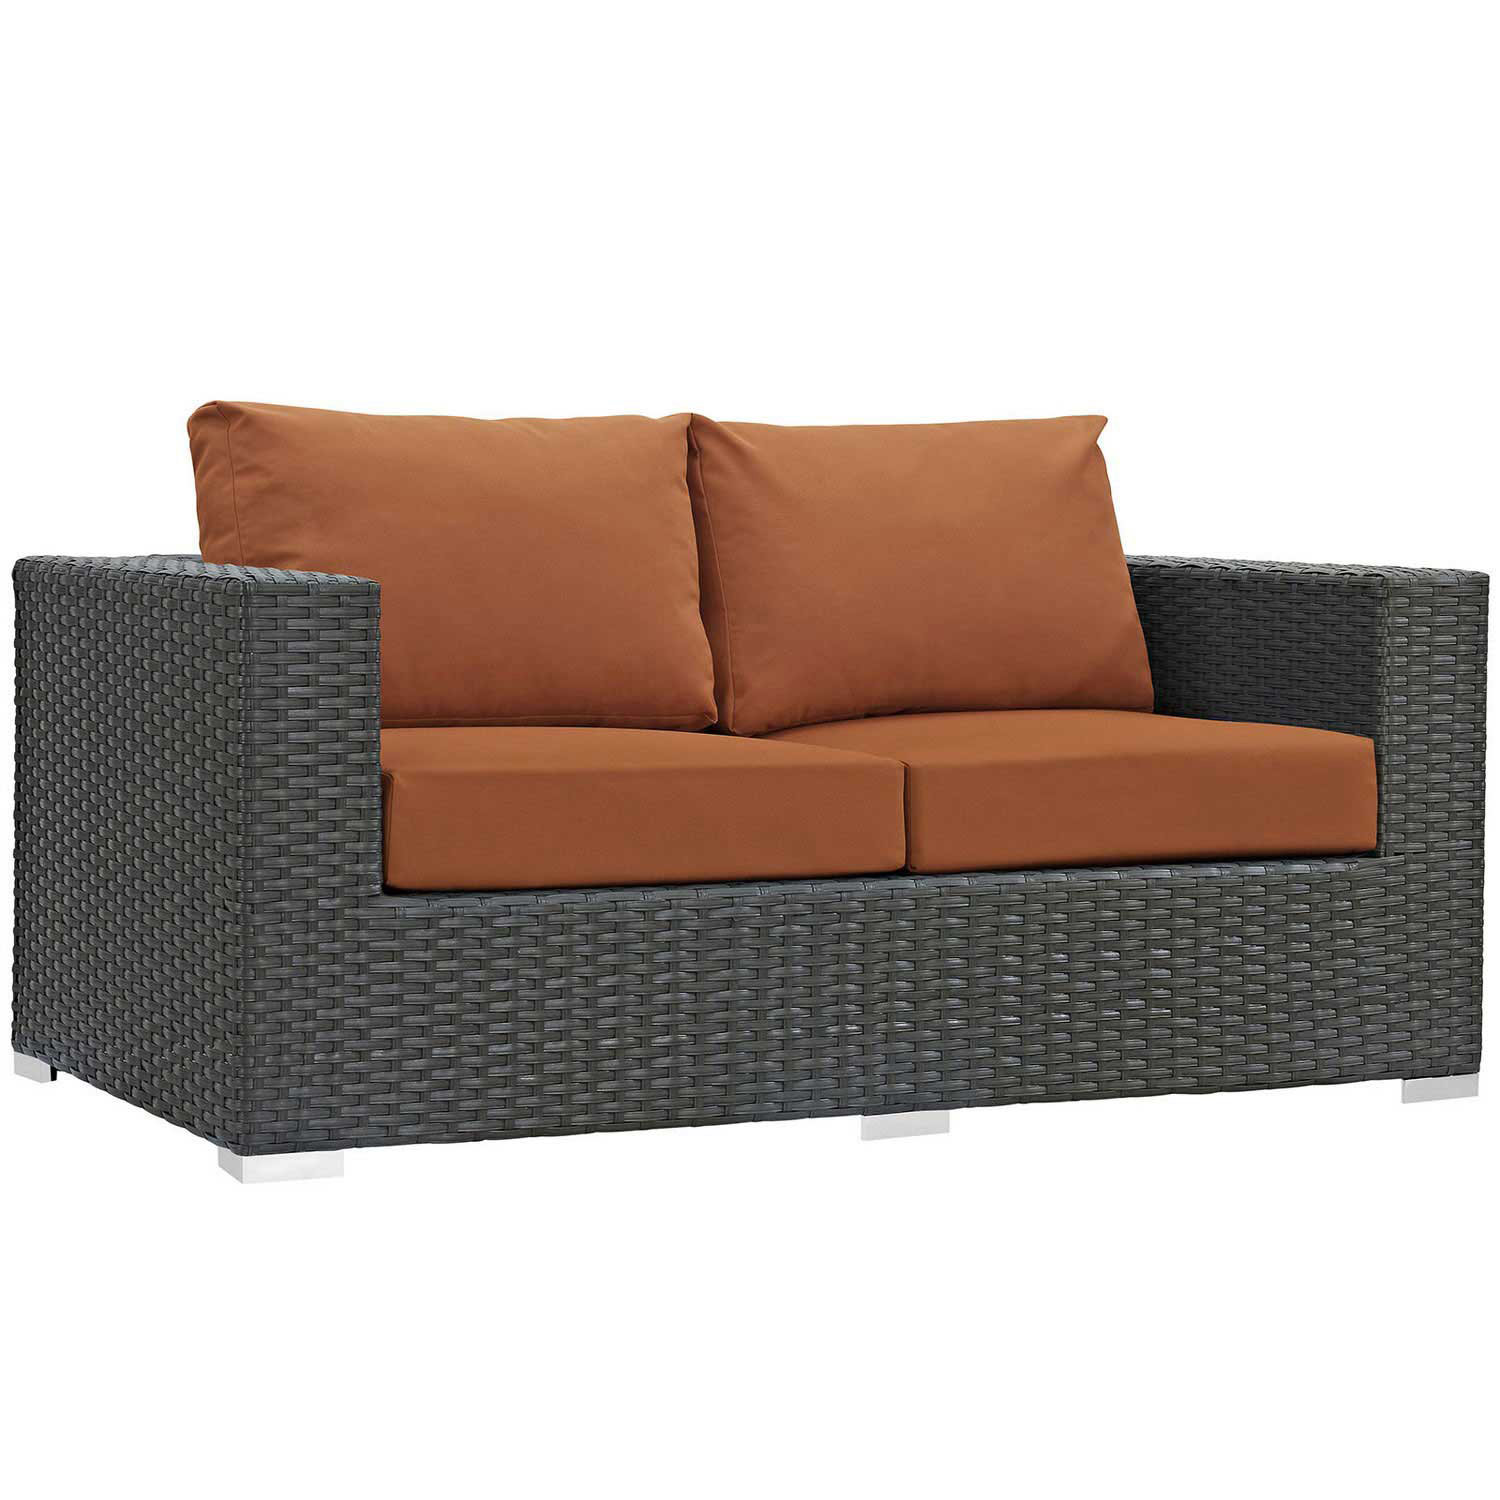 Modway Sojourn Outdoor Patio SunbrellaLoveseat - Canvas Tuscan